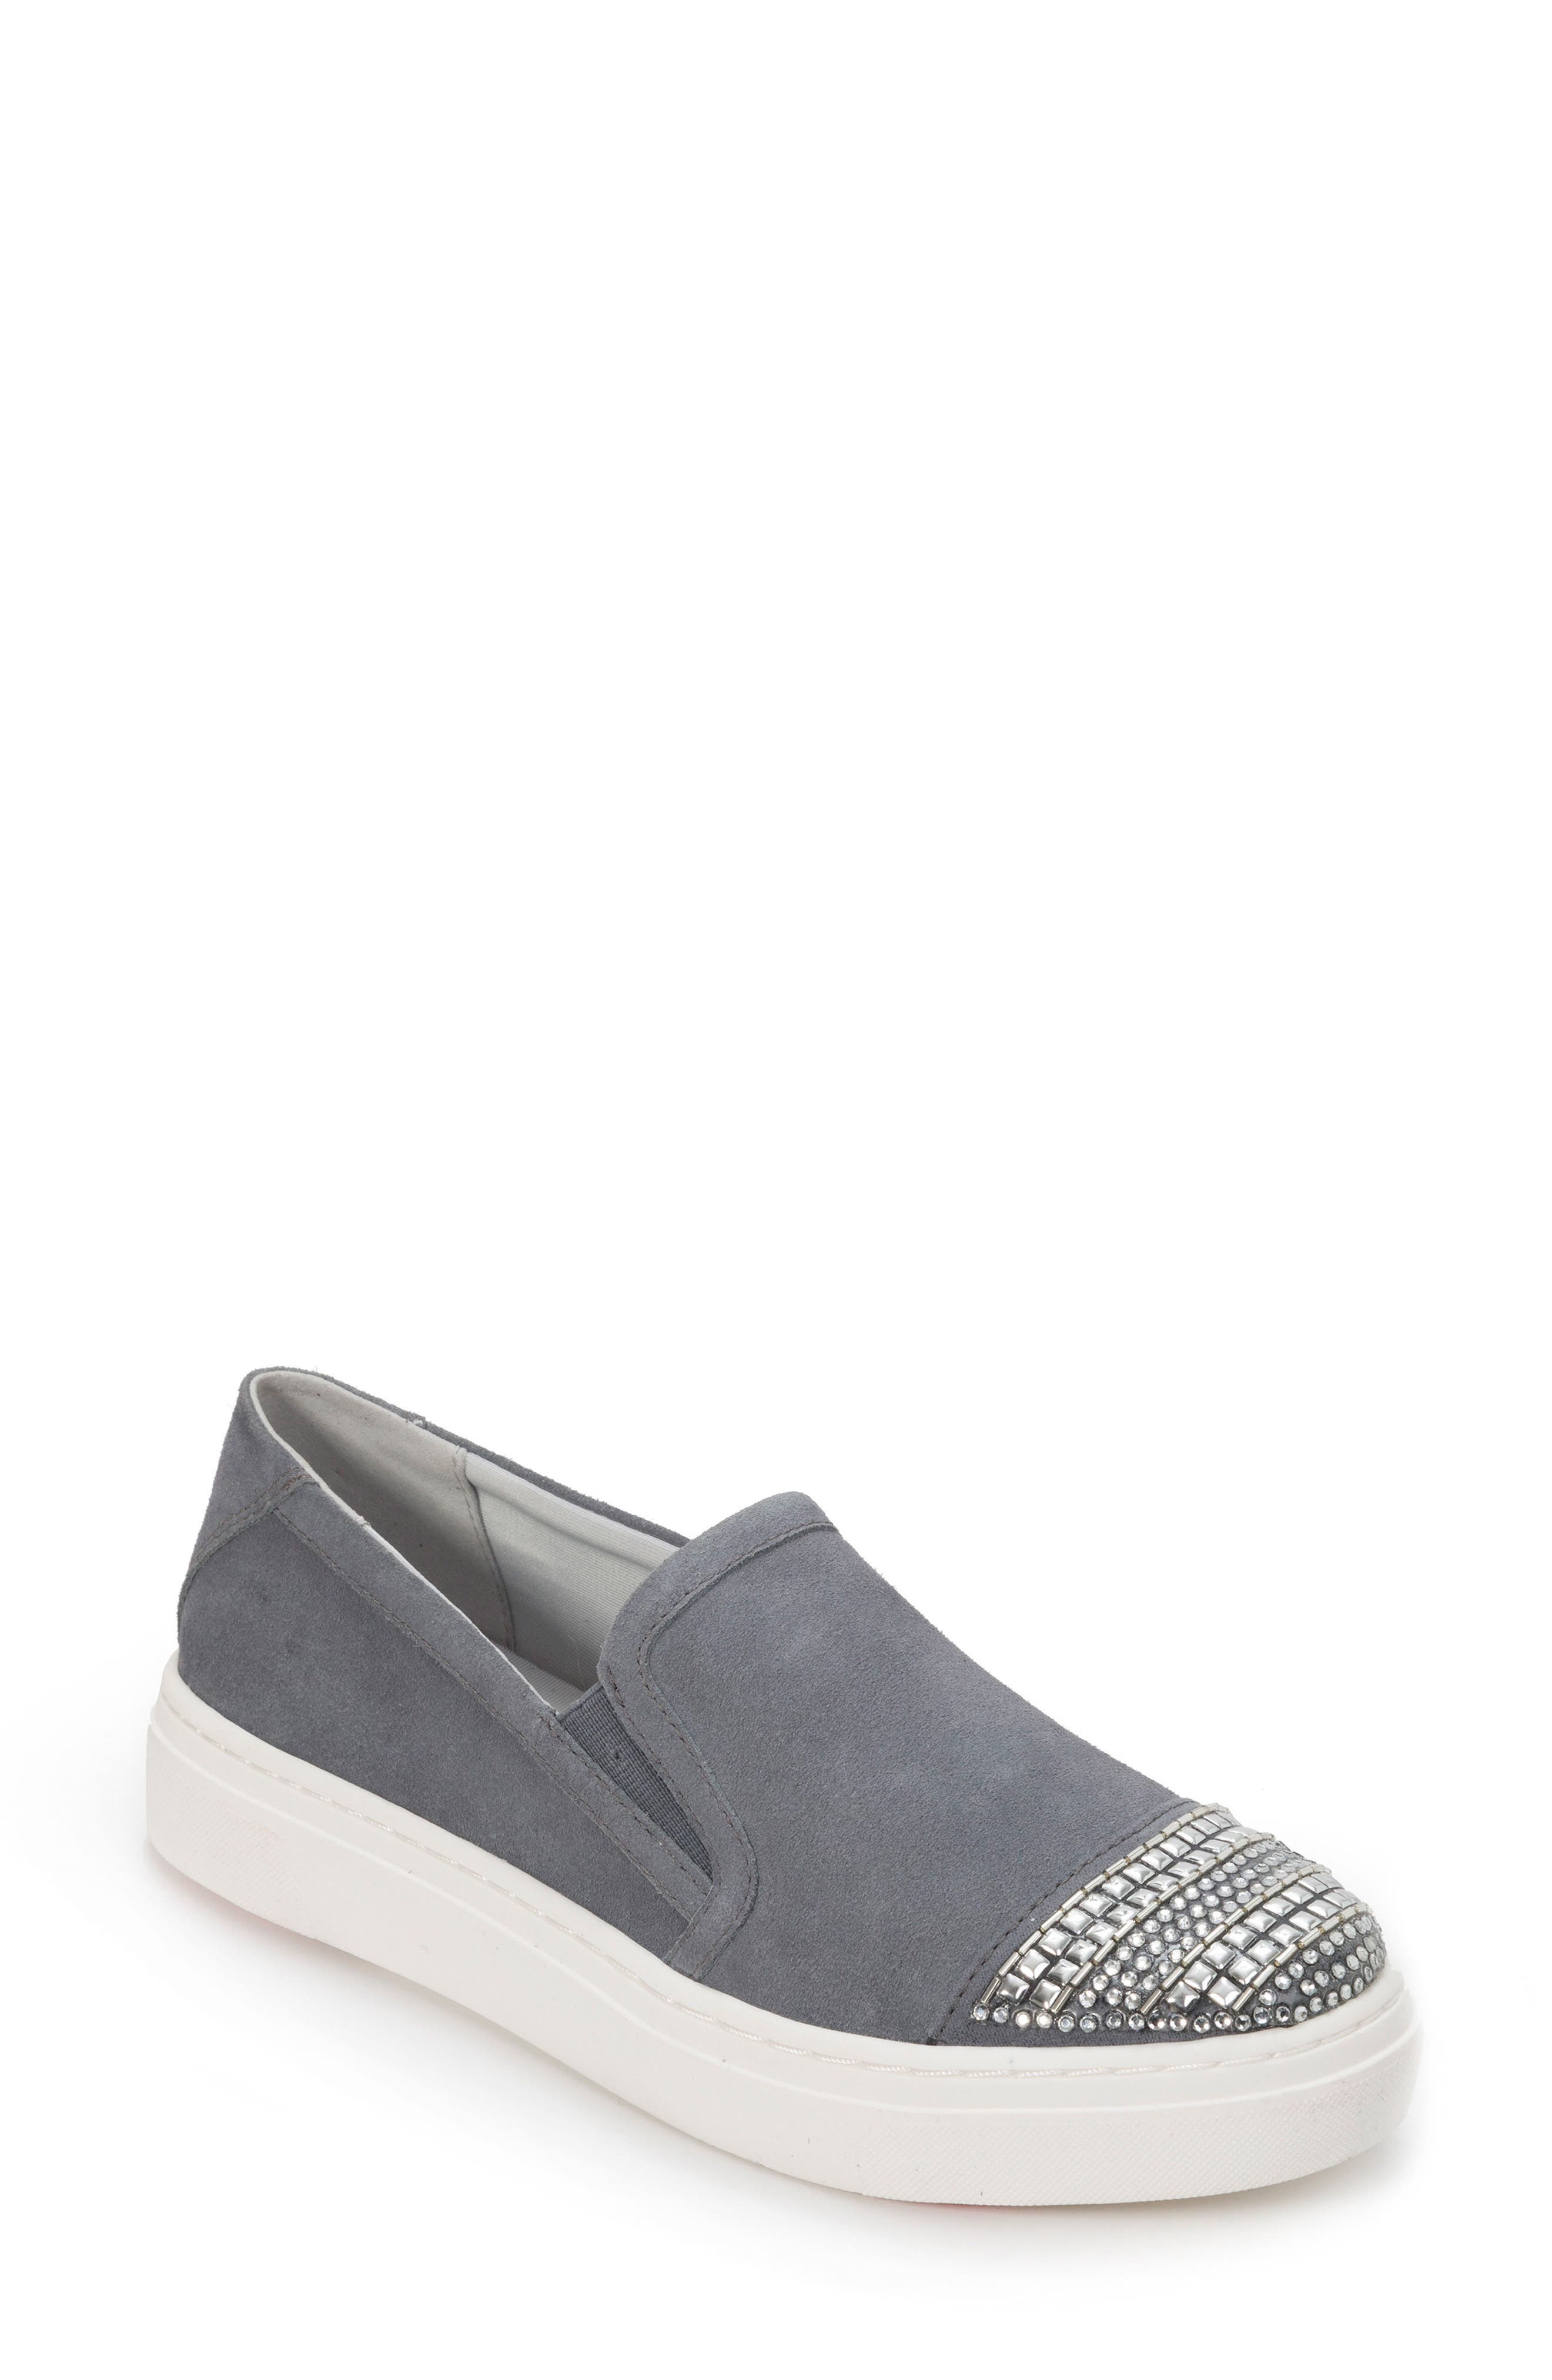 Finley Slip-On Sneaker,                         Main,                         color, Denim Blue Suede